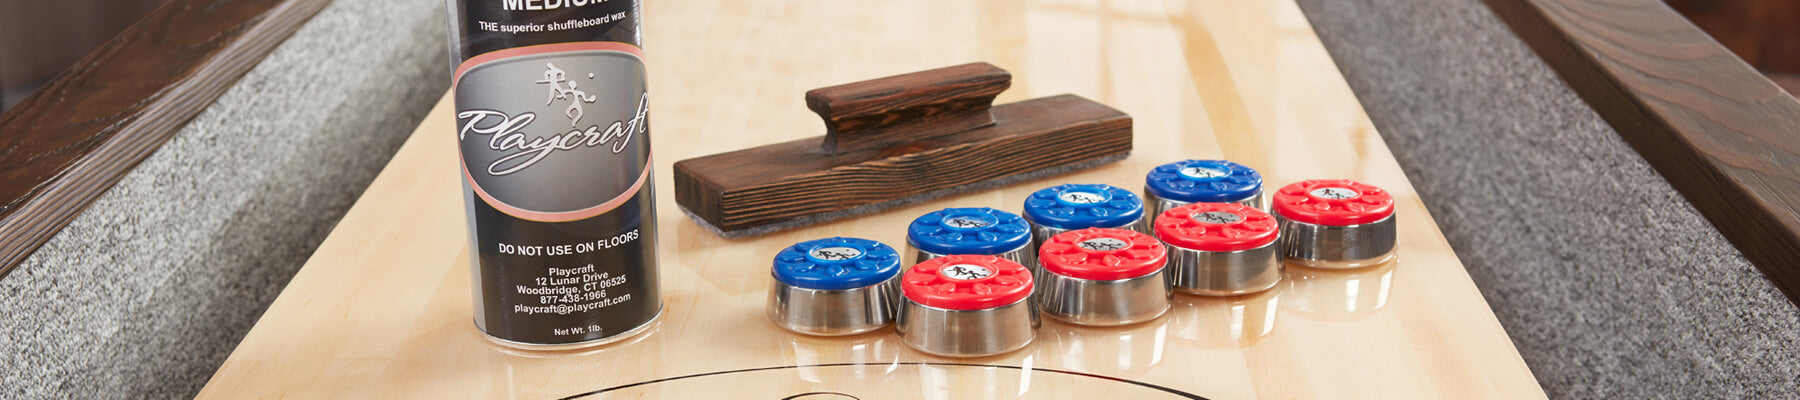 Game On: How to Play Shuffleboard on Your New Table - Gaming Blaze